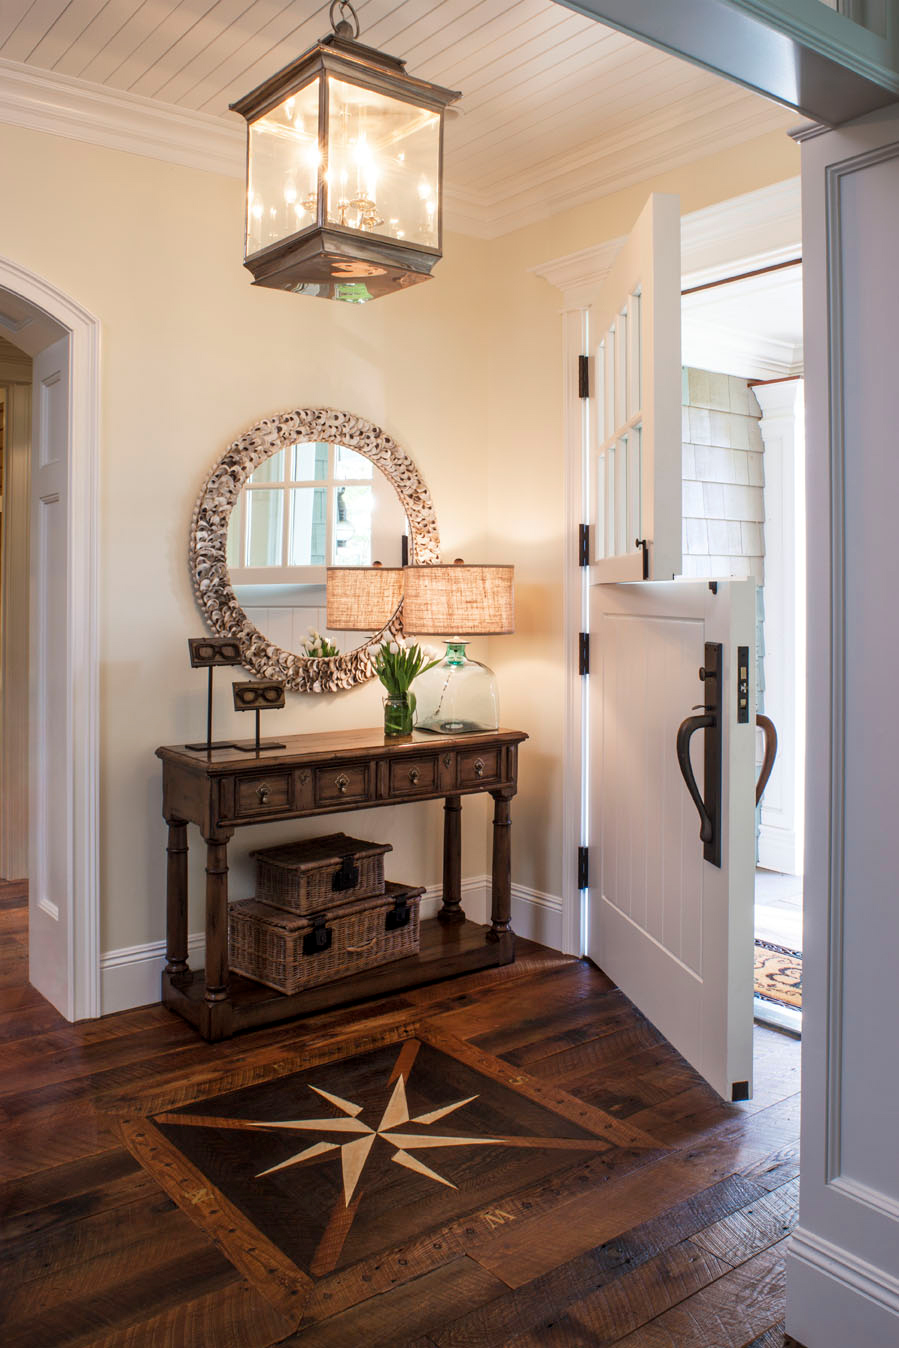 Rustic Entry Foyer Lighting : Best rustic entryway decorating ideas and designs for